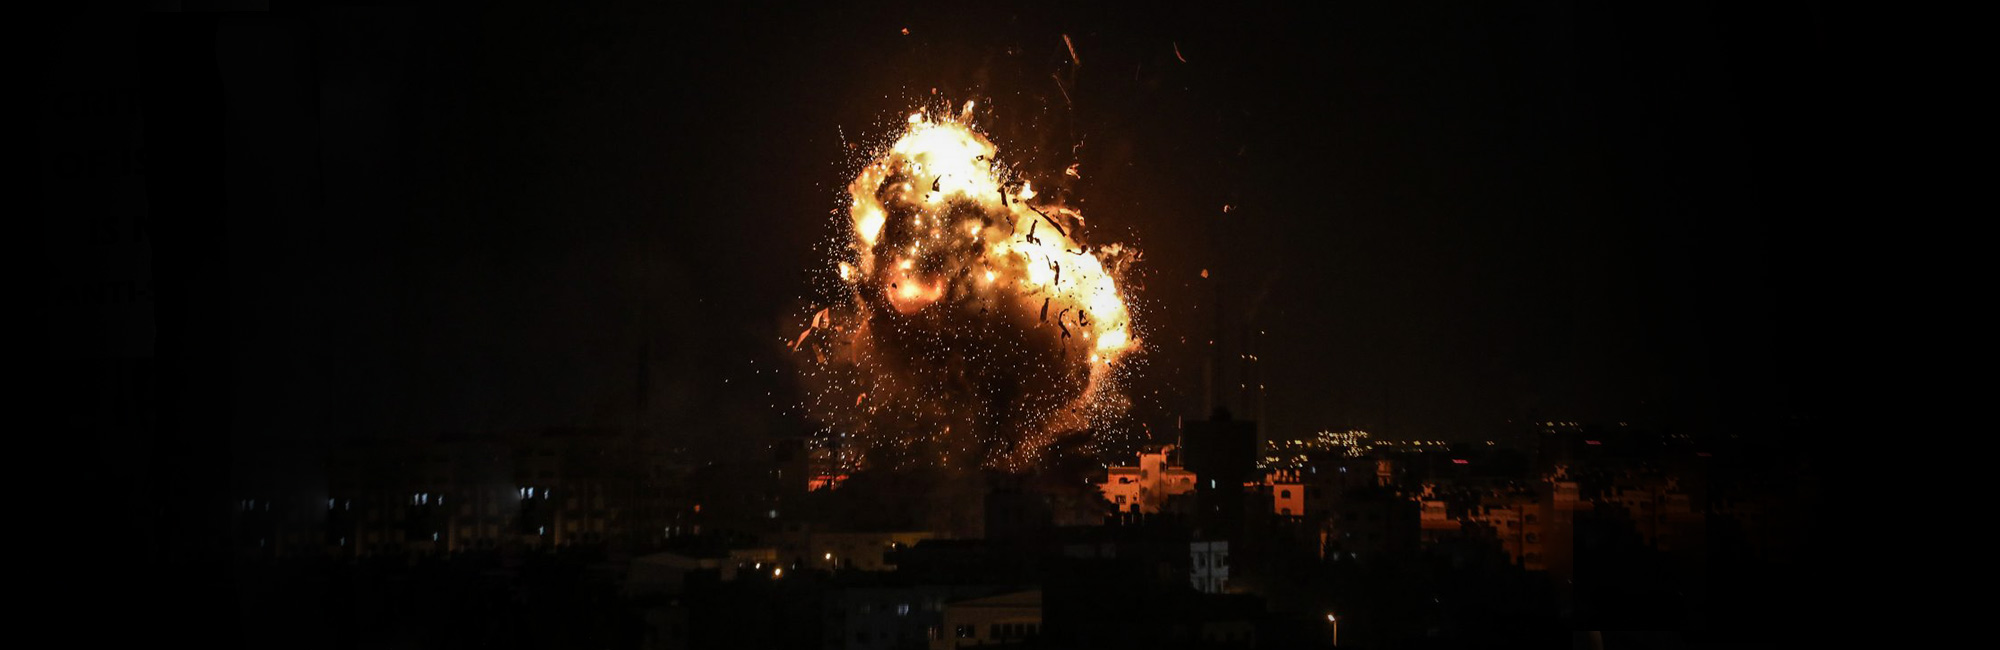 Israel Breaks Cease-Fire Leading to Deadly Escalation in Gaza